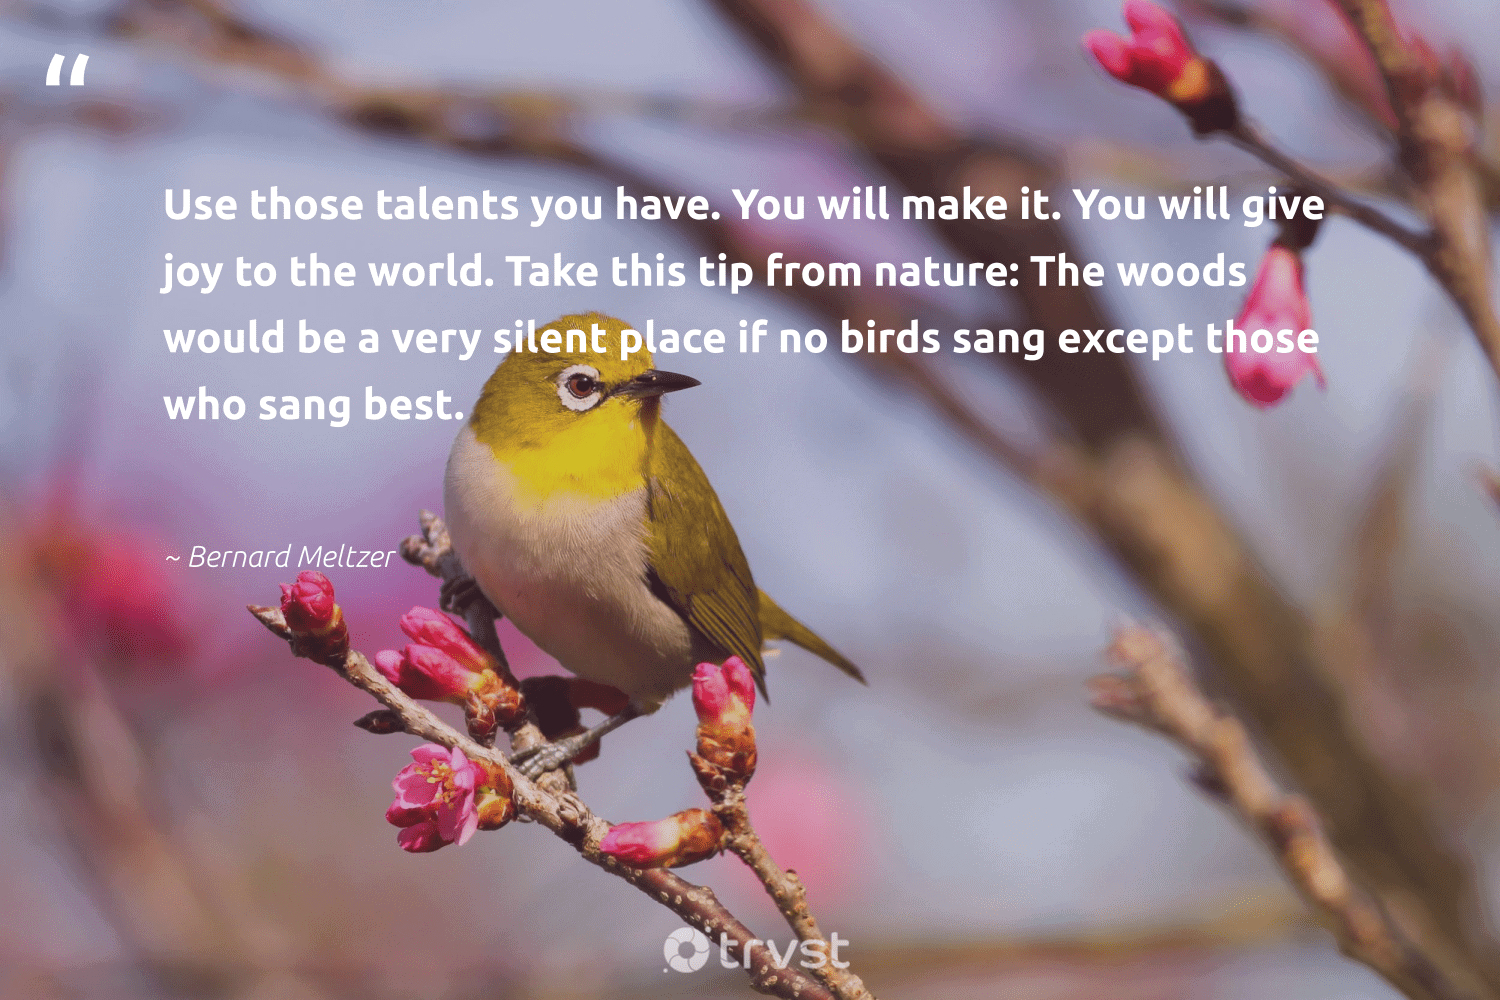 """""""Use those talents you have. You will make it. You will give joy to the world. Take this tip from nature: The woods would be a very silent place if no birds sang except those who sang best.""""  - Bernard Meltzer #trvst #quotes #birds #bird #geology #bethechange #forscience #dotherightthing #natural #changetheworld #biology #dogood"""